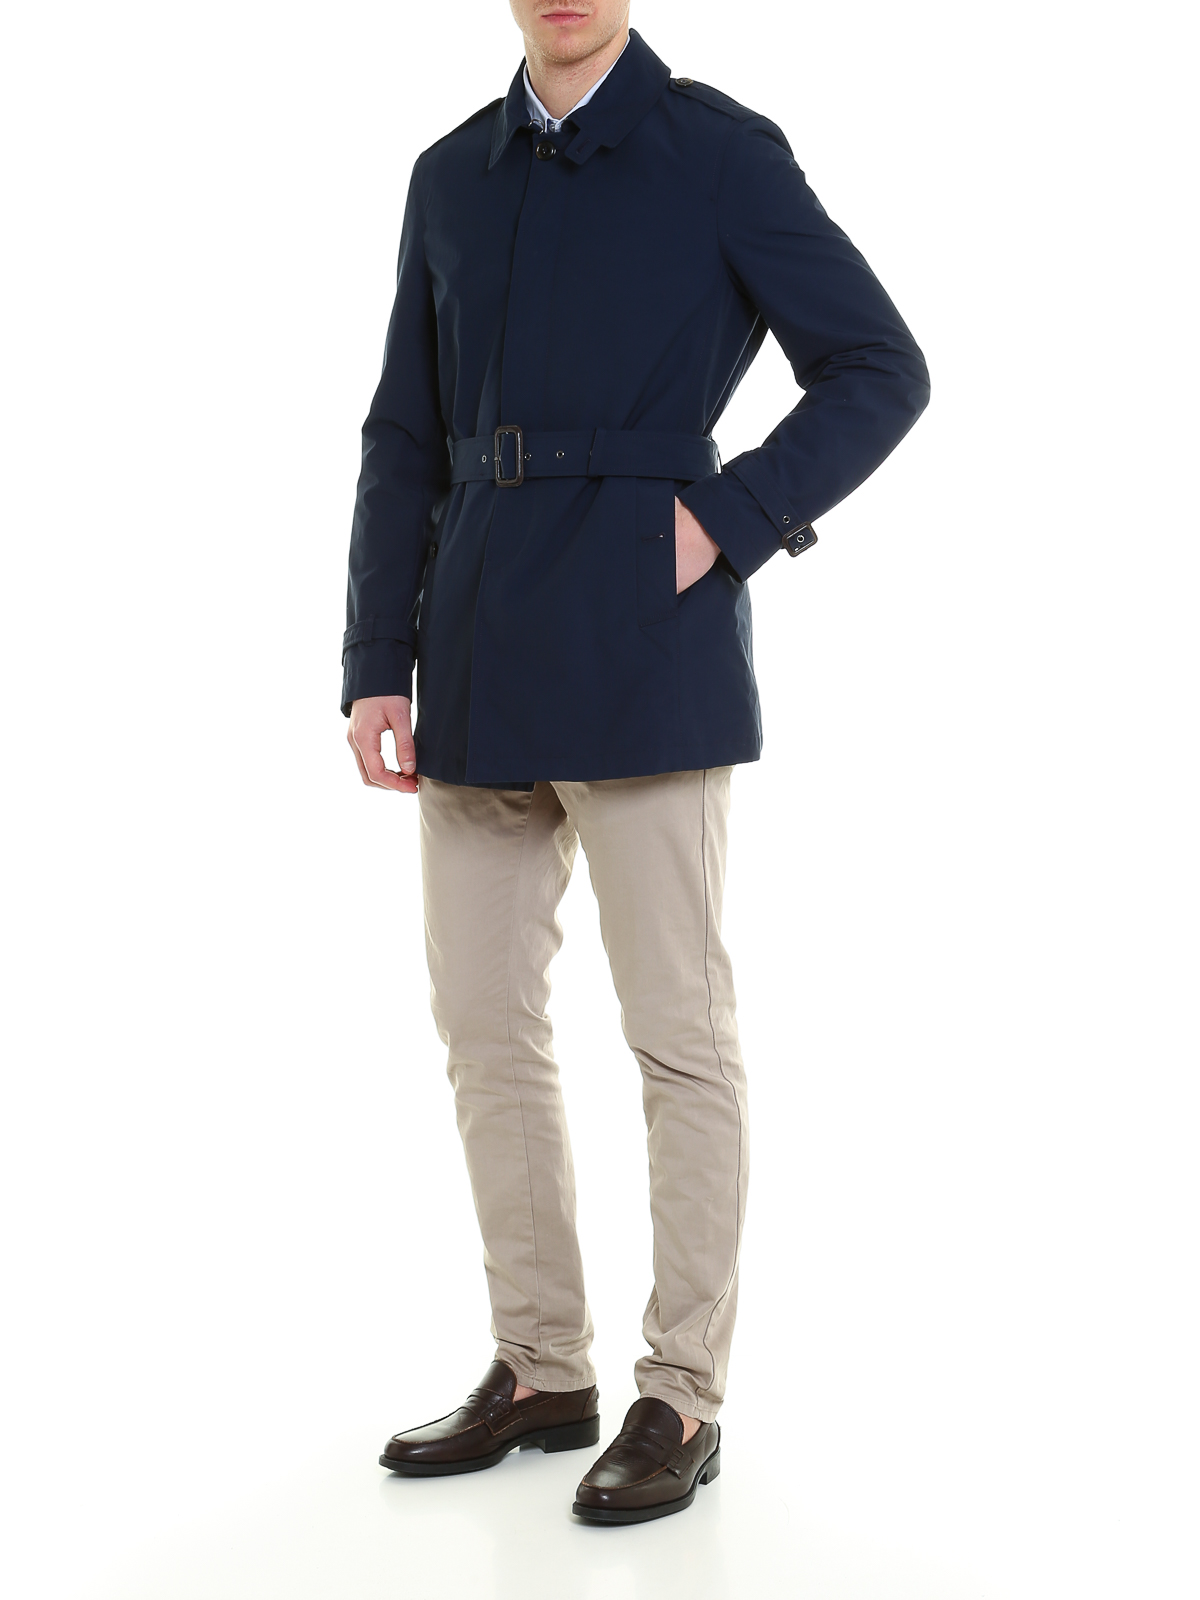 Coat Trenchs Brcps0191309 Pour Homme Winster Trench Baracuta 3TFclK1J